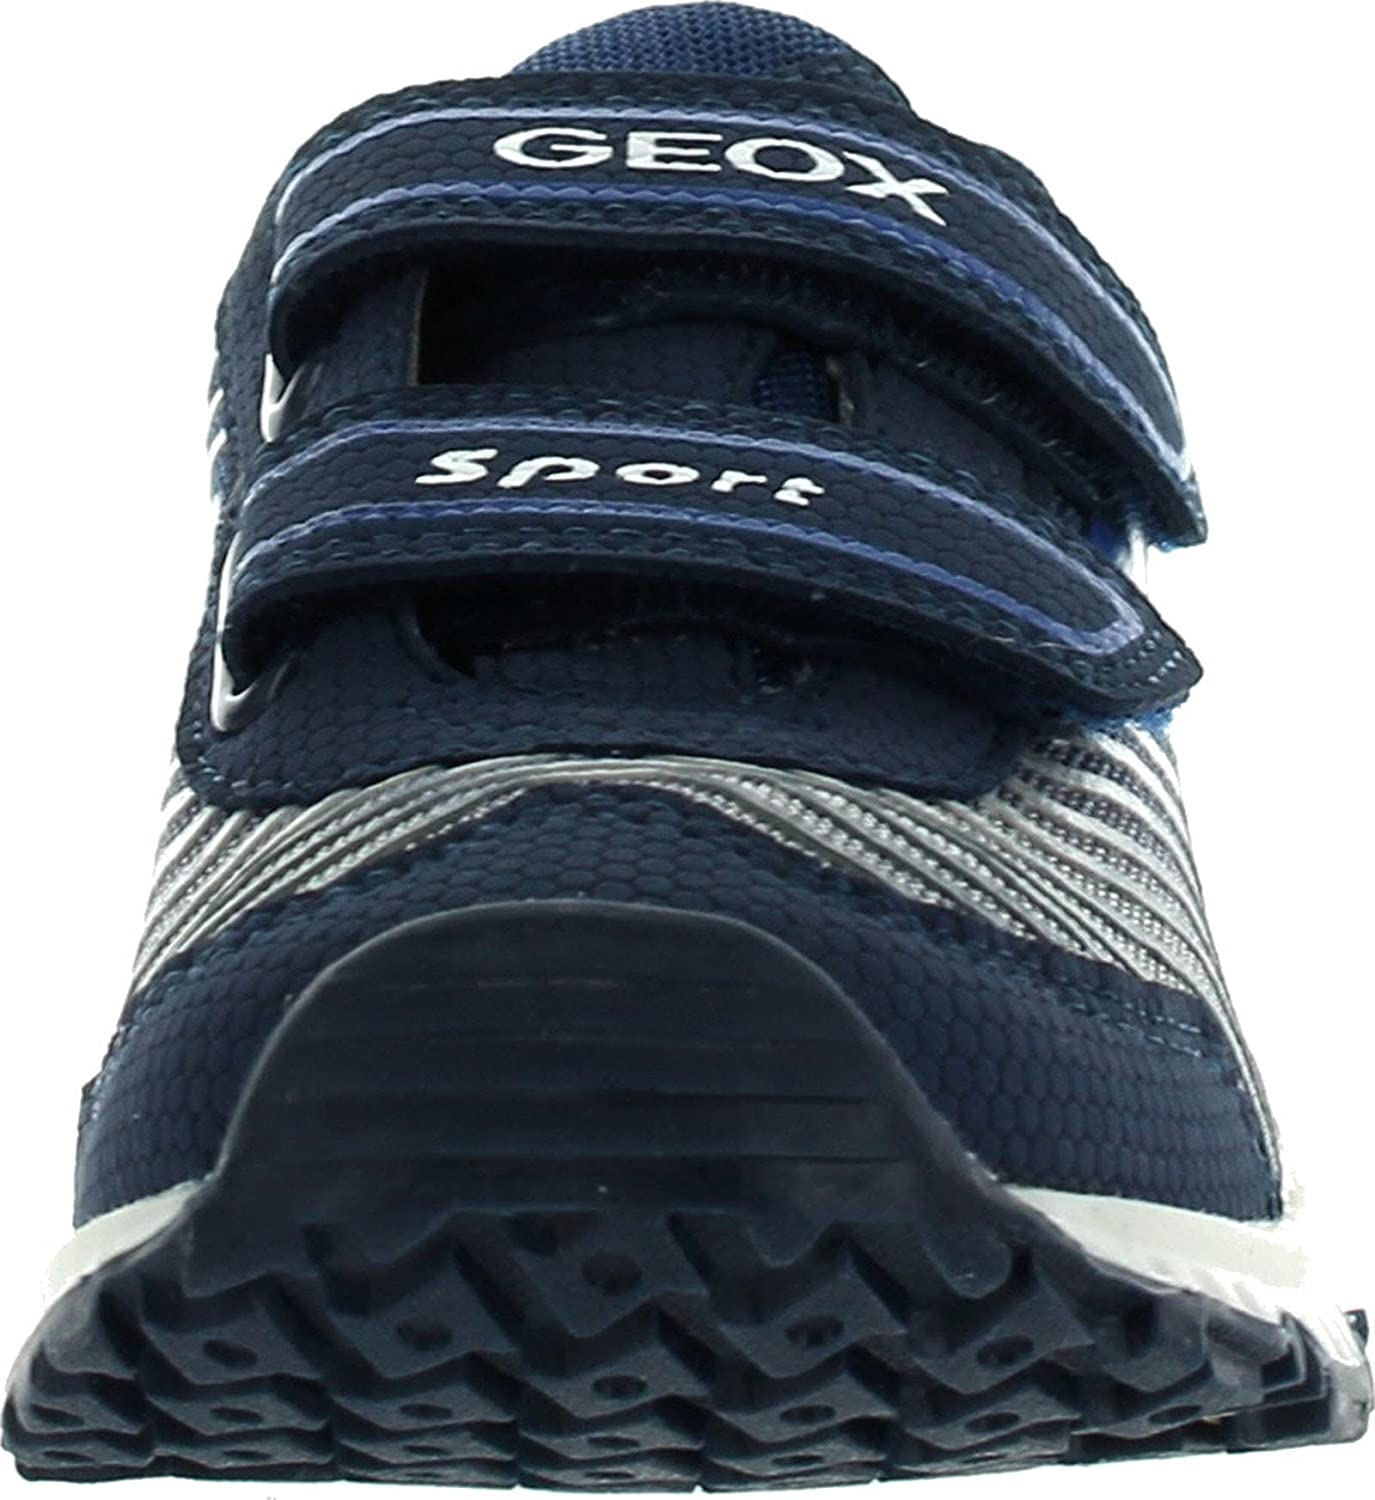 Geox Boys Bernie B Athletic Fashion Sneakers